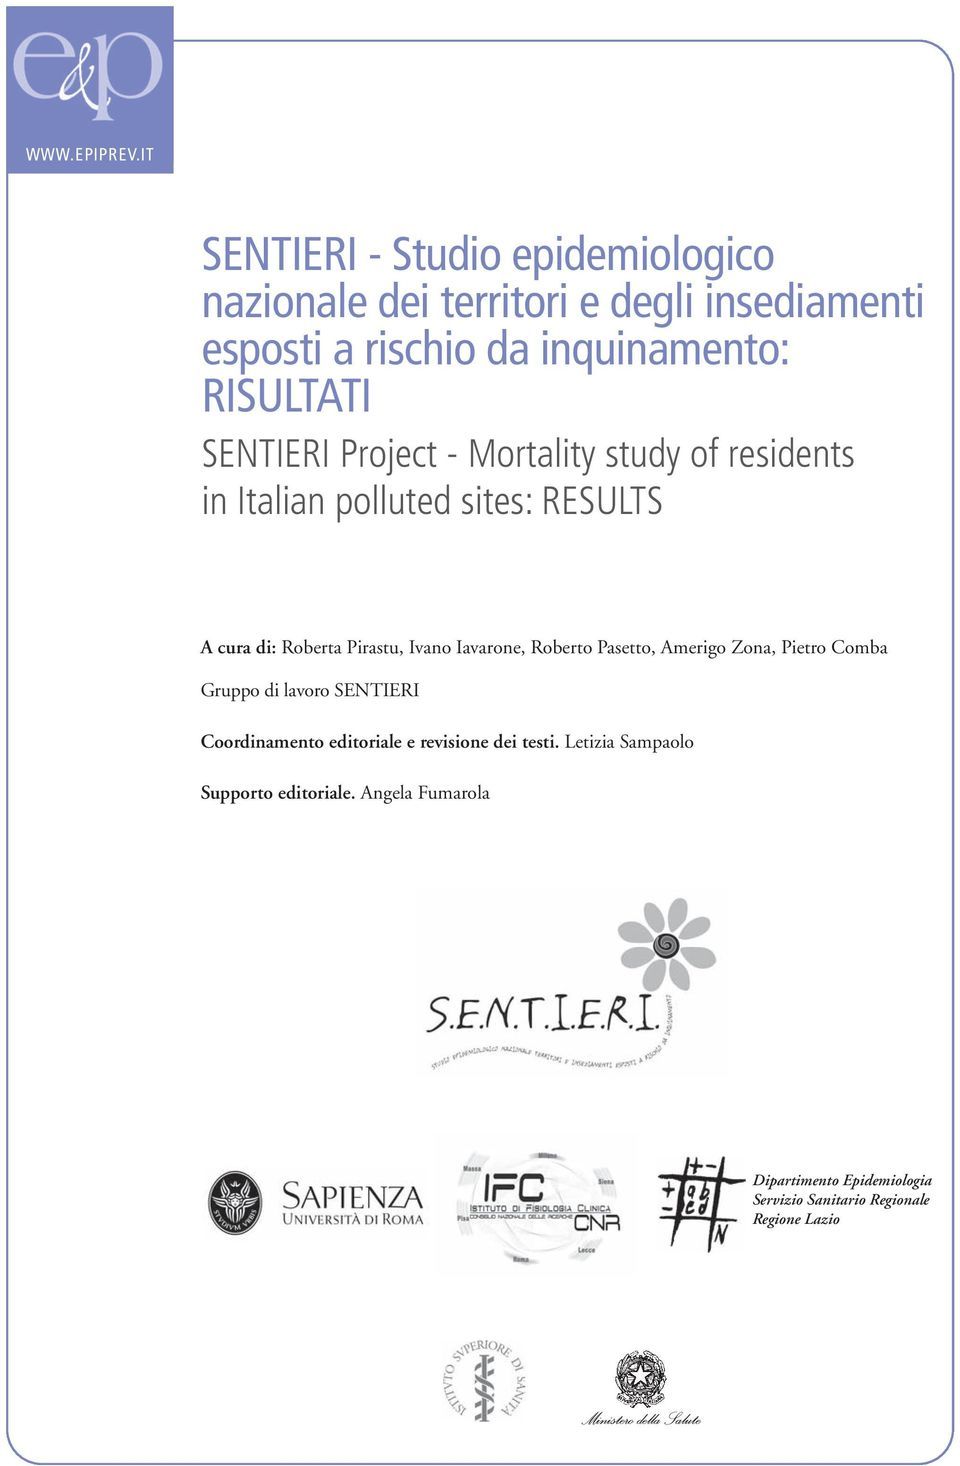 SENTIERI Project - Mortality study of residents in Italian polluted sites: RESULTS A cura di: Roberta Pirastu, Ivano Iavarone,